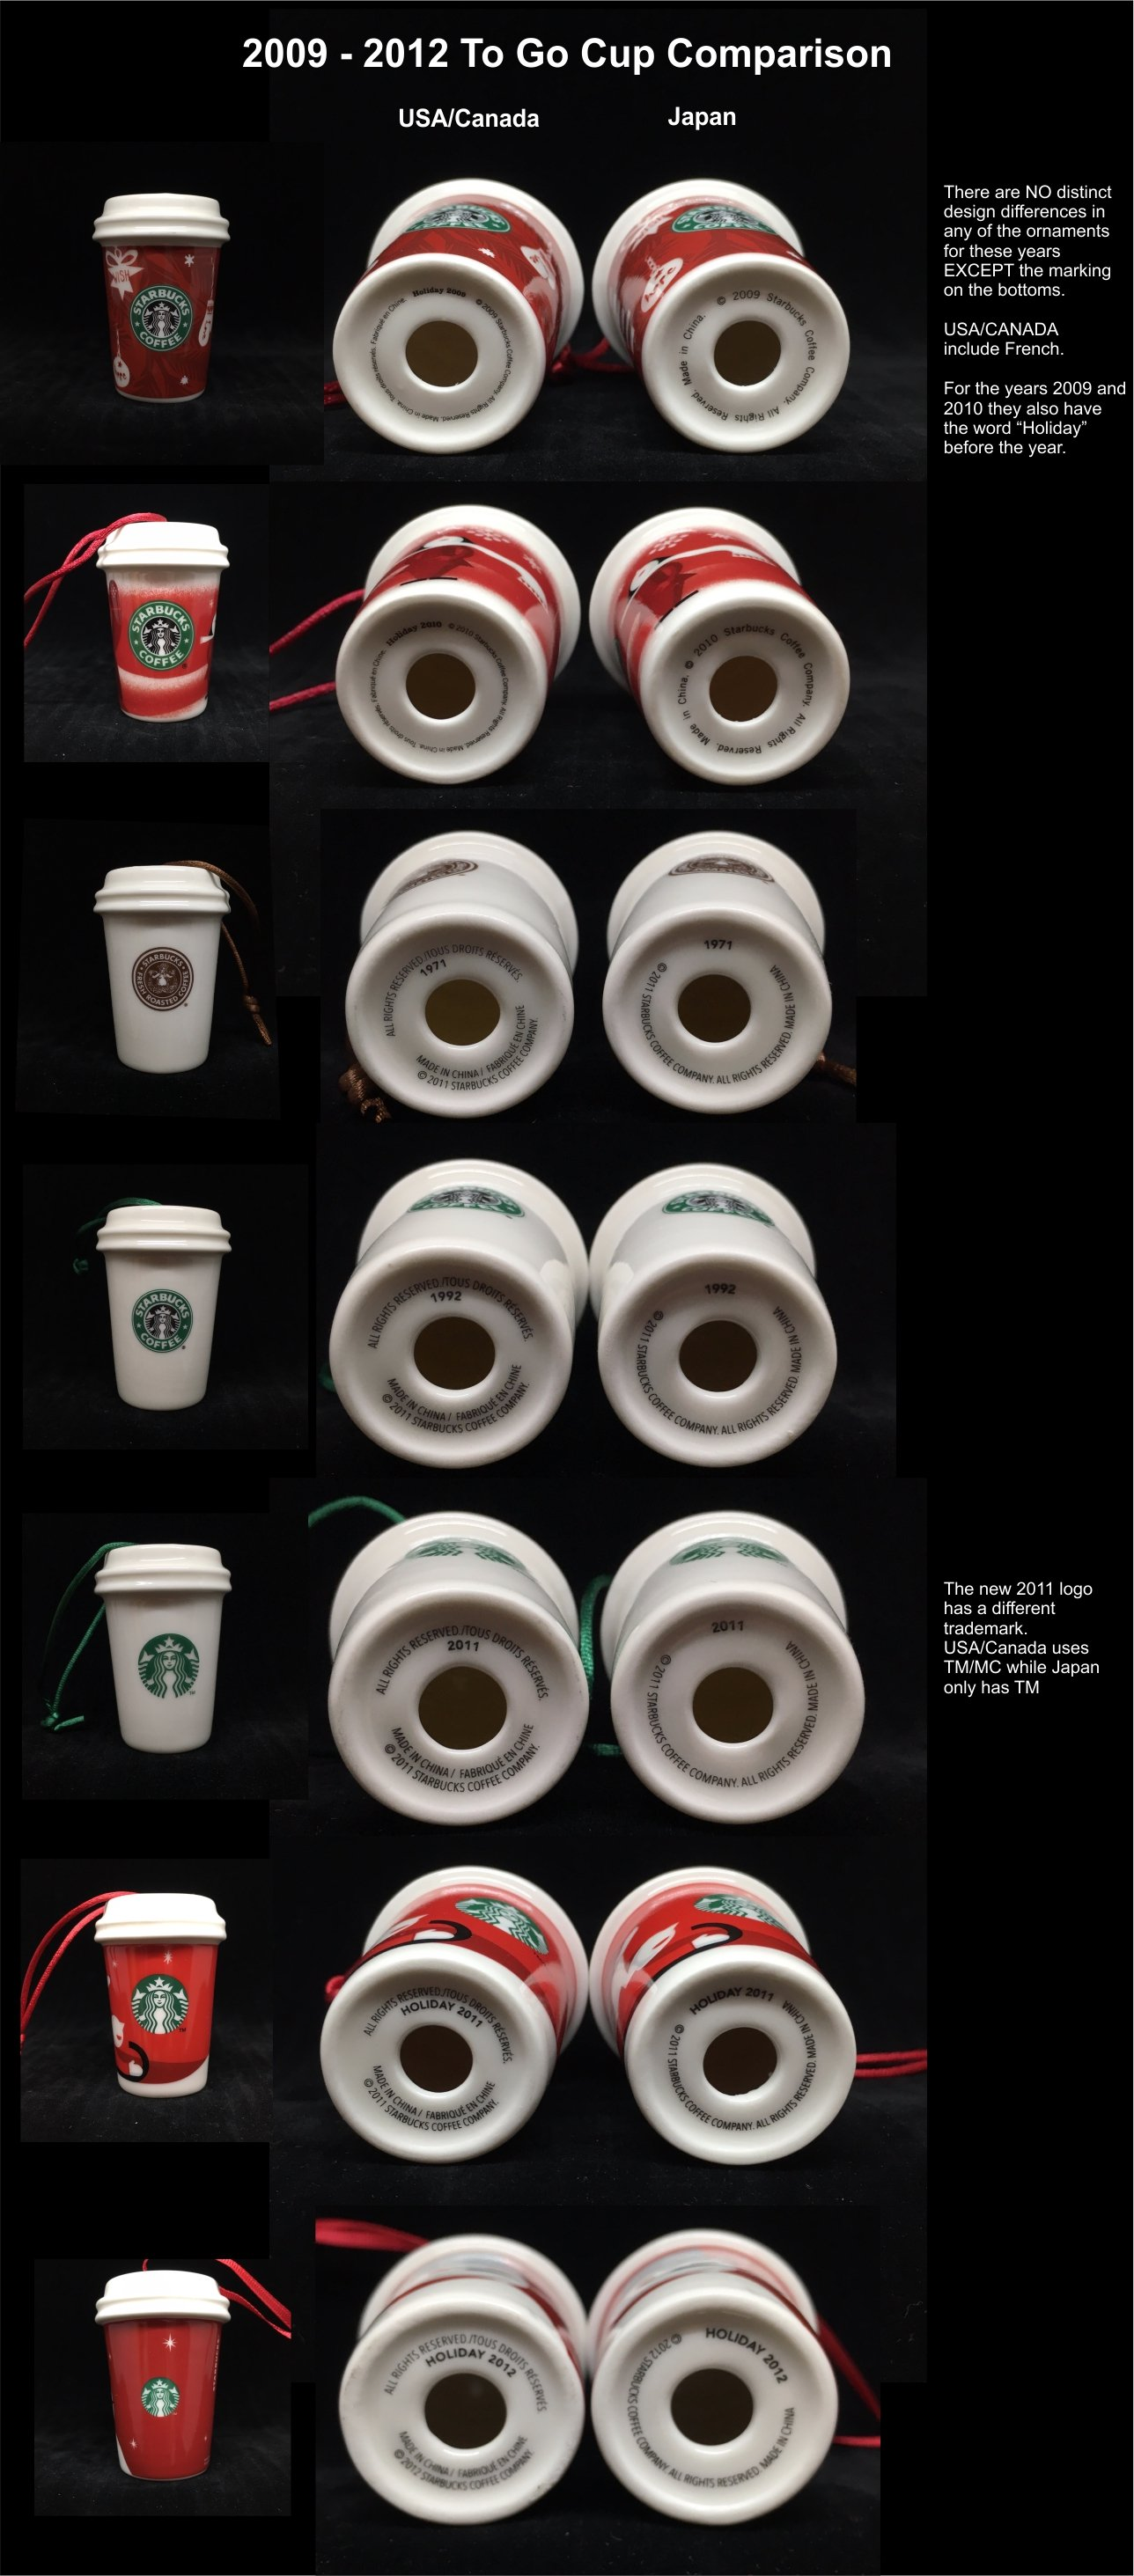 2009-2012 To Go Cup Comparison